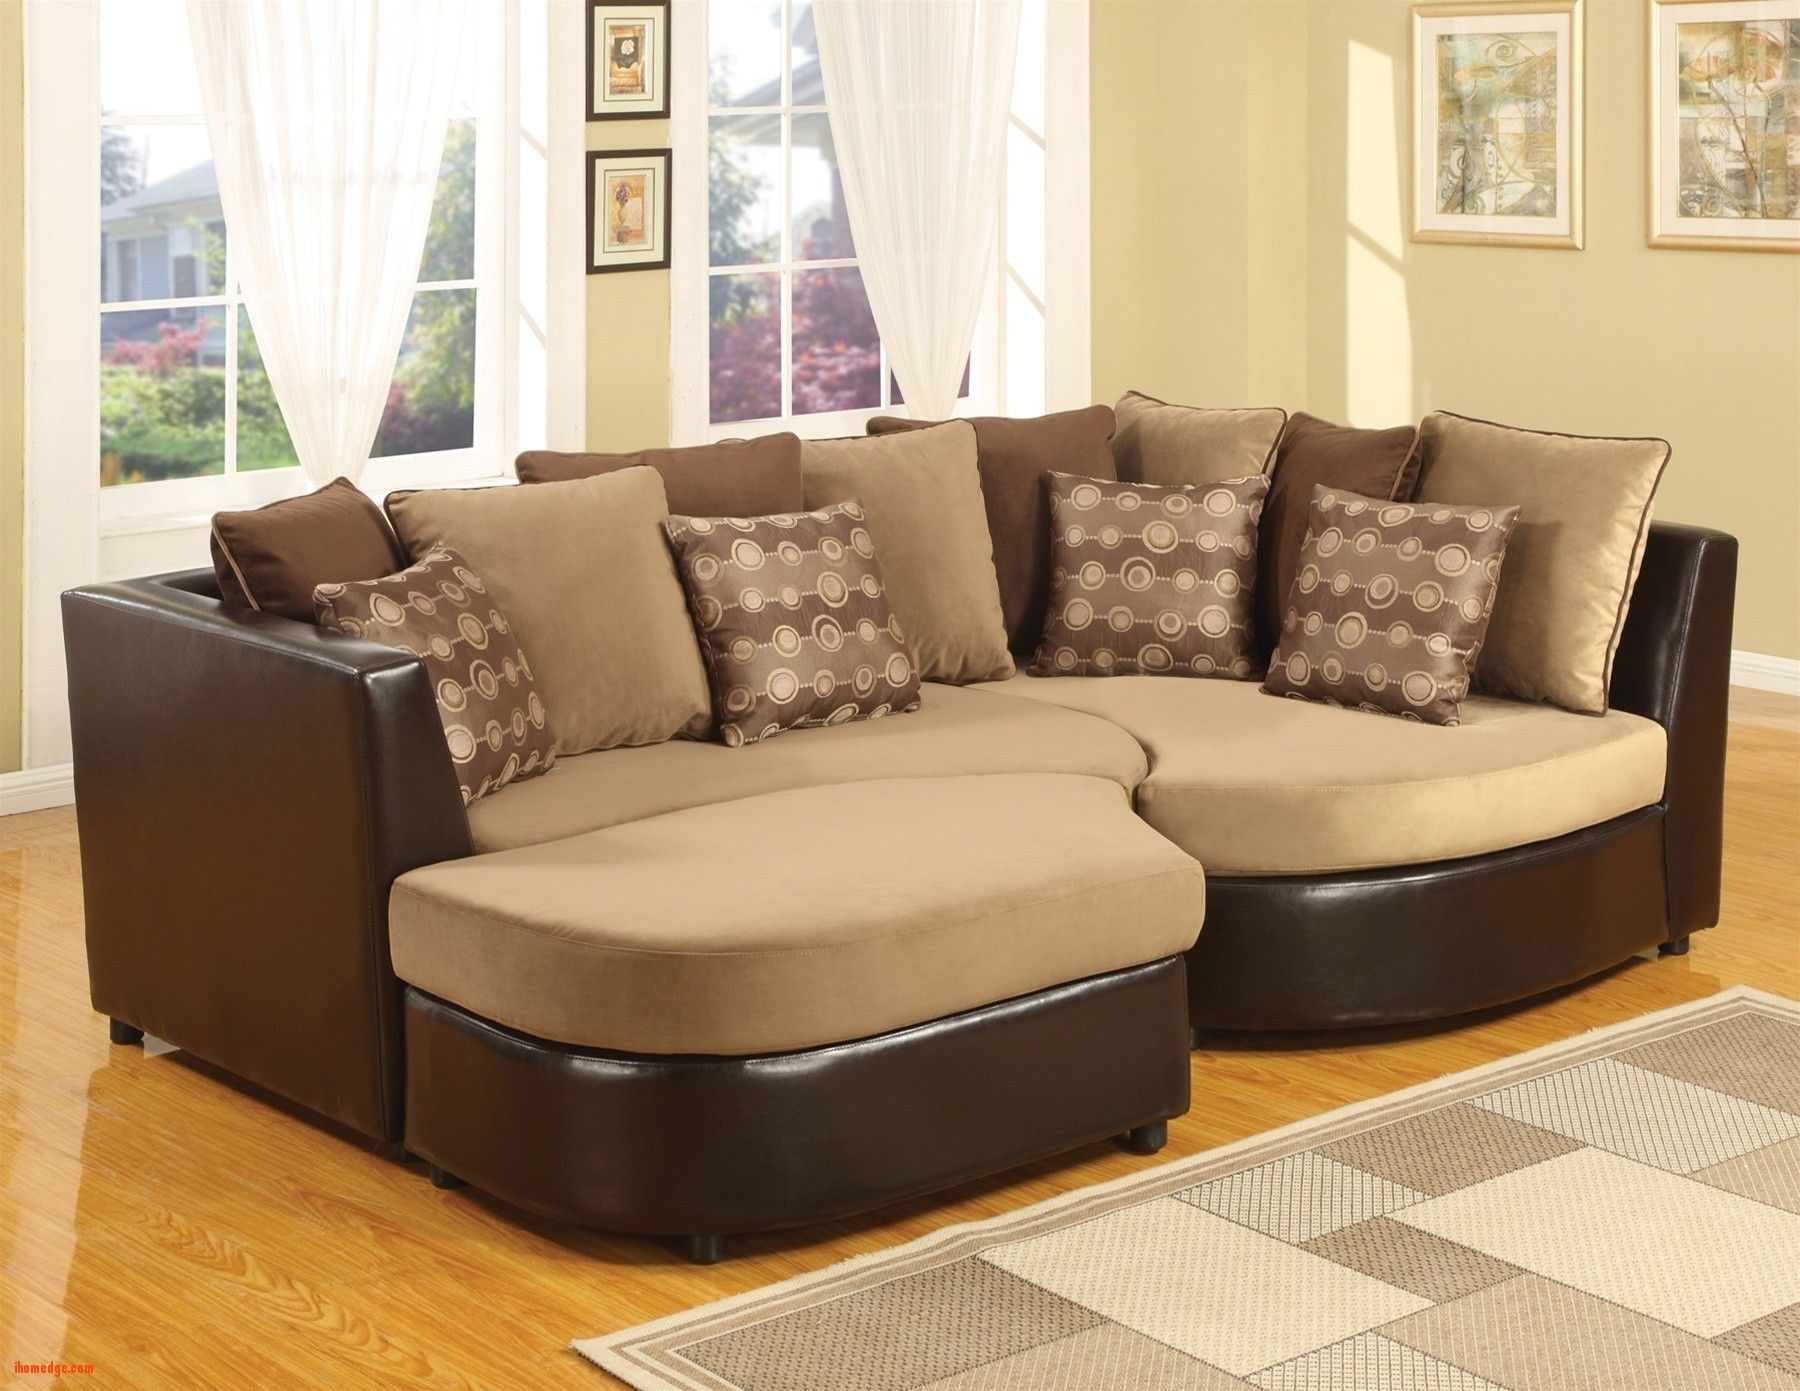 Inspirational Sofa Sleeper Sectional Good The Brick Bed For Your Queen Microfiber With